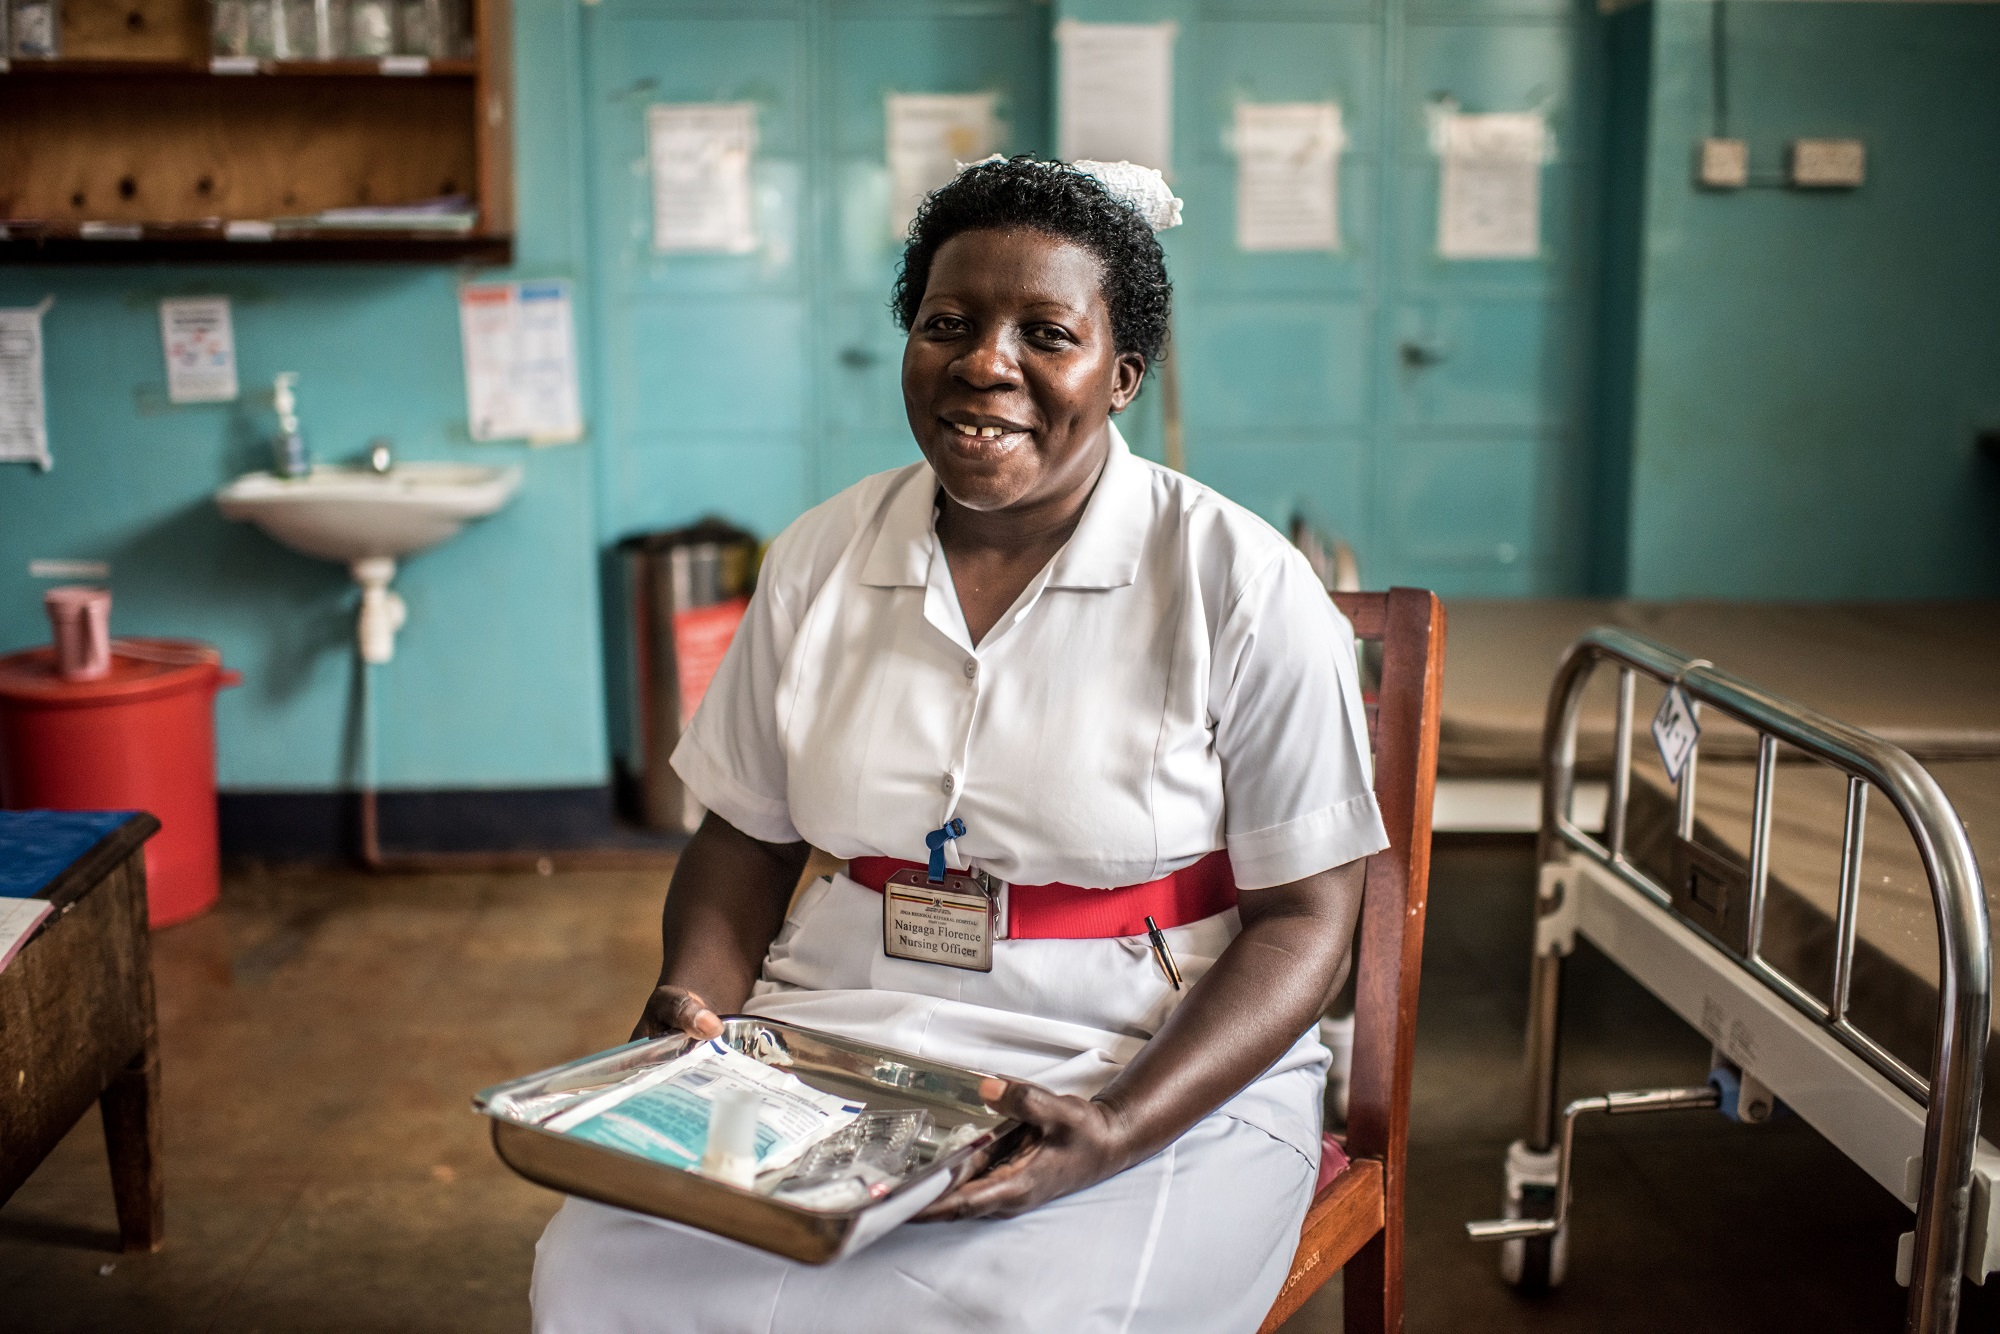 Naigaga Florence, a nursing officer, photographed in the emergecny ward at the Jinja Regional Referral Hospital.